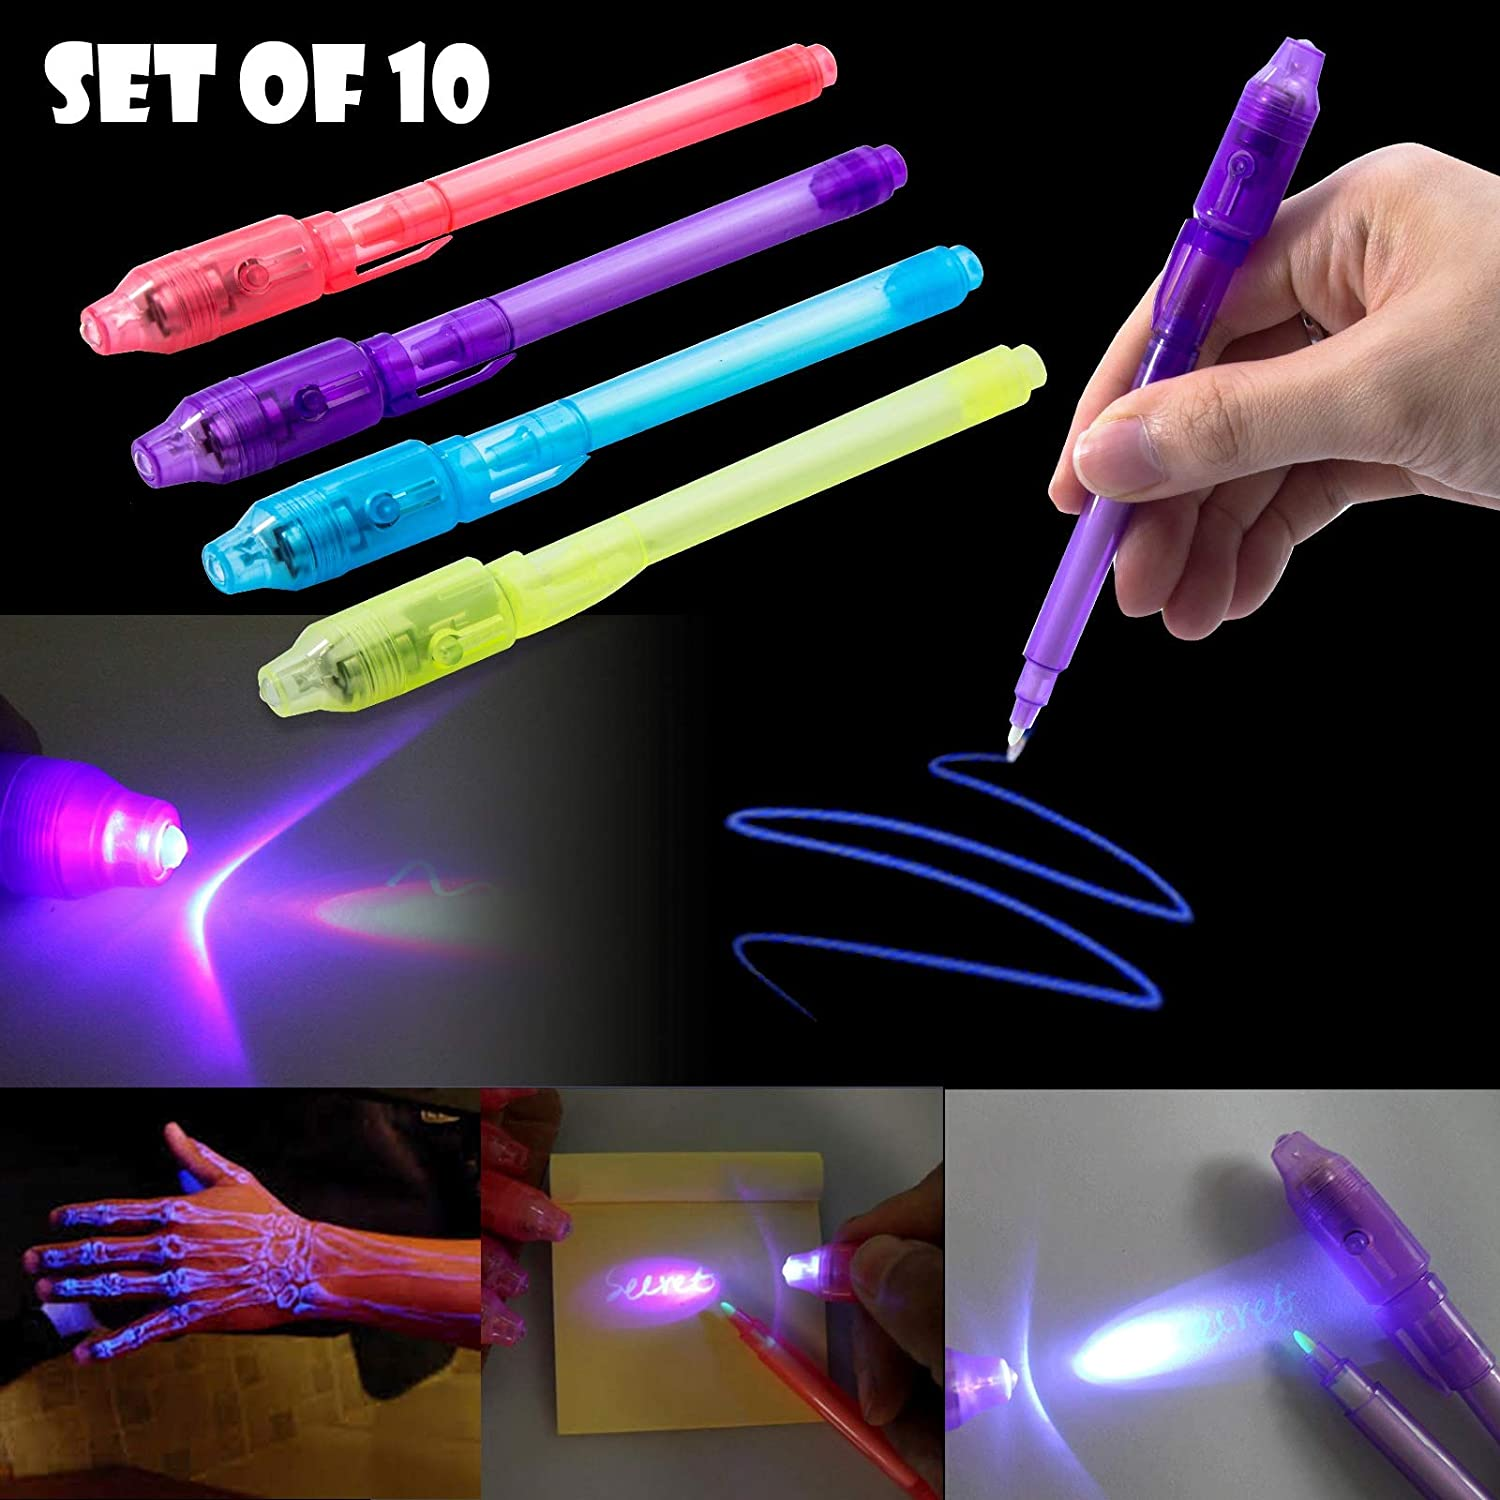 24 Spy Pen with UV Light Magic Marker Kid Pens for Secret Message and Party Favor Bag Goody Stuffer Invisible Ink Pen